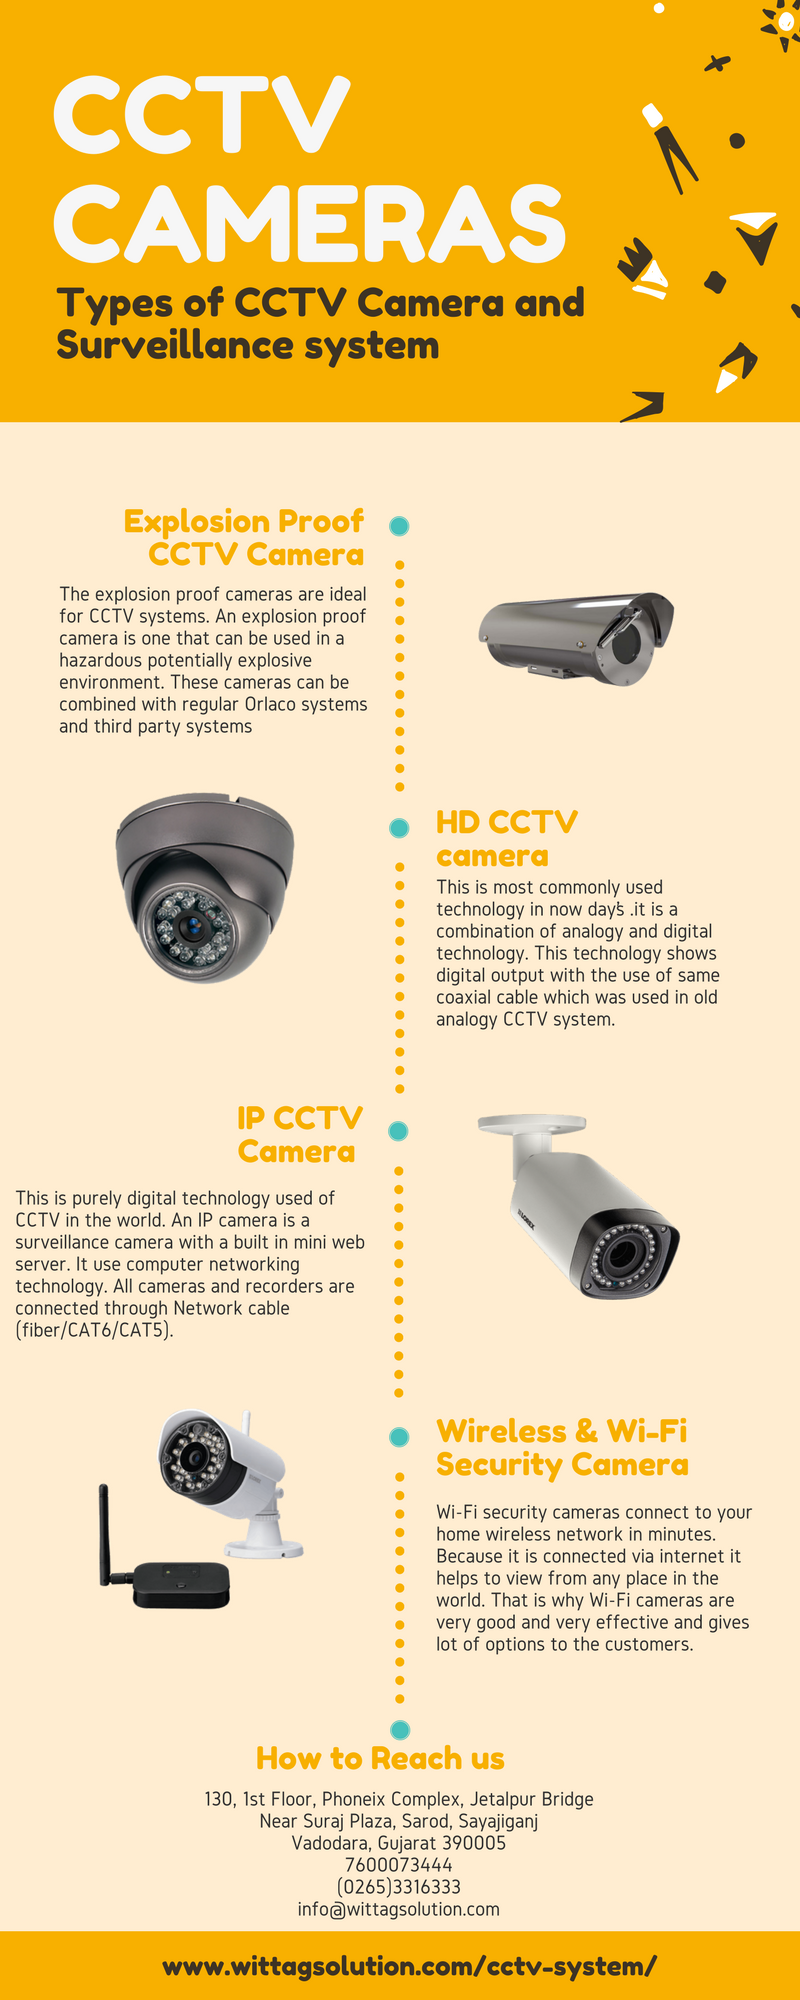 CCTV Camera is purely digital technology used of CCTV in the